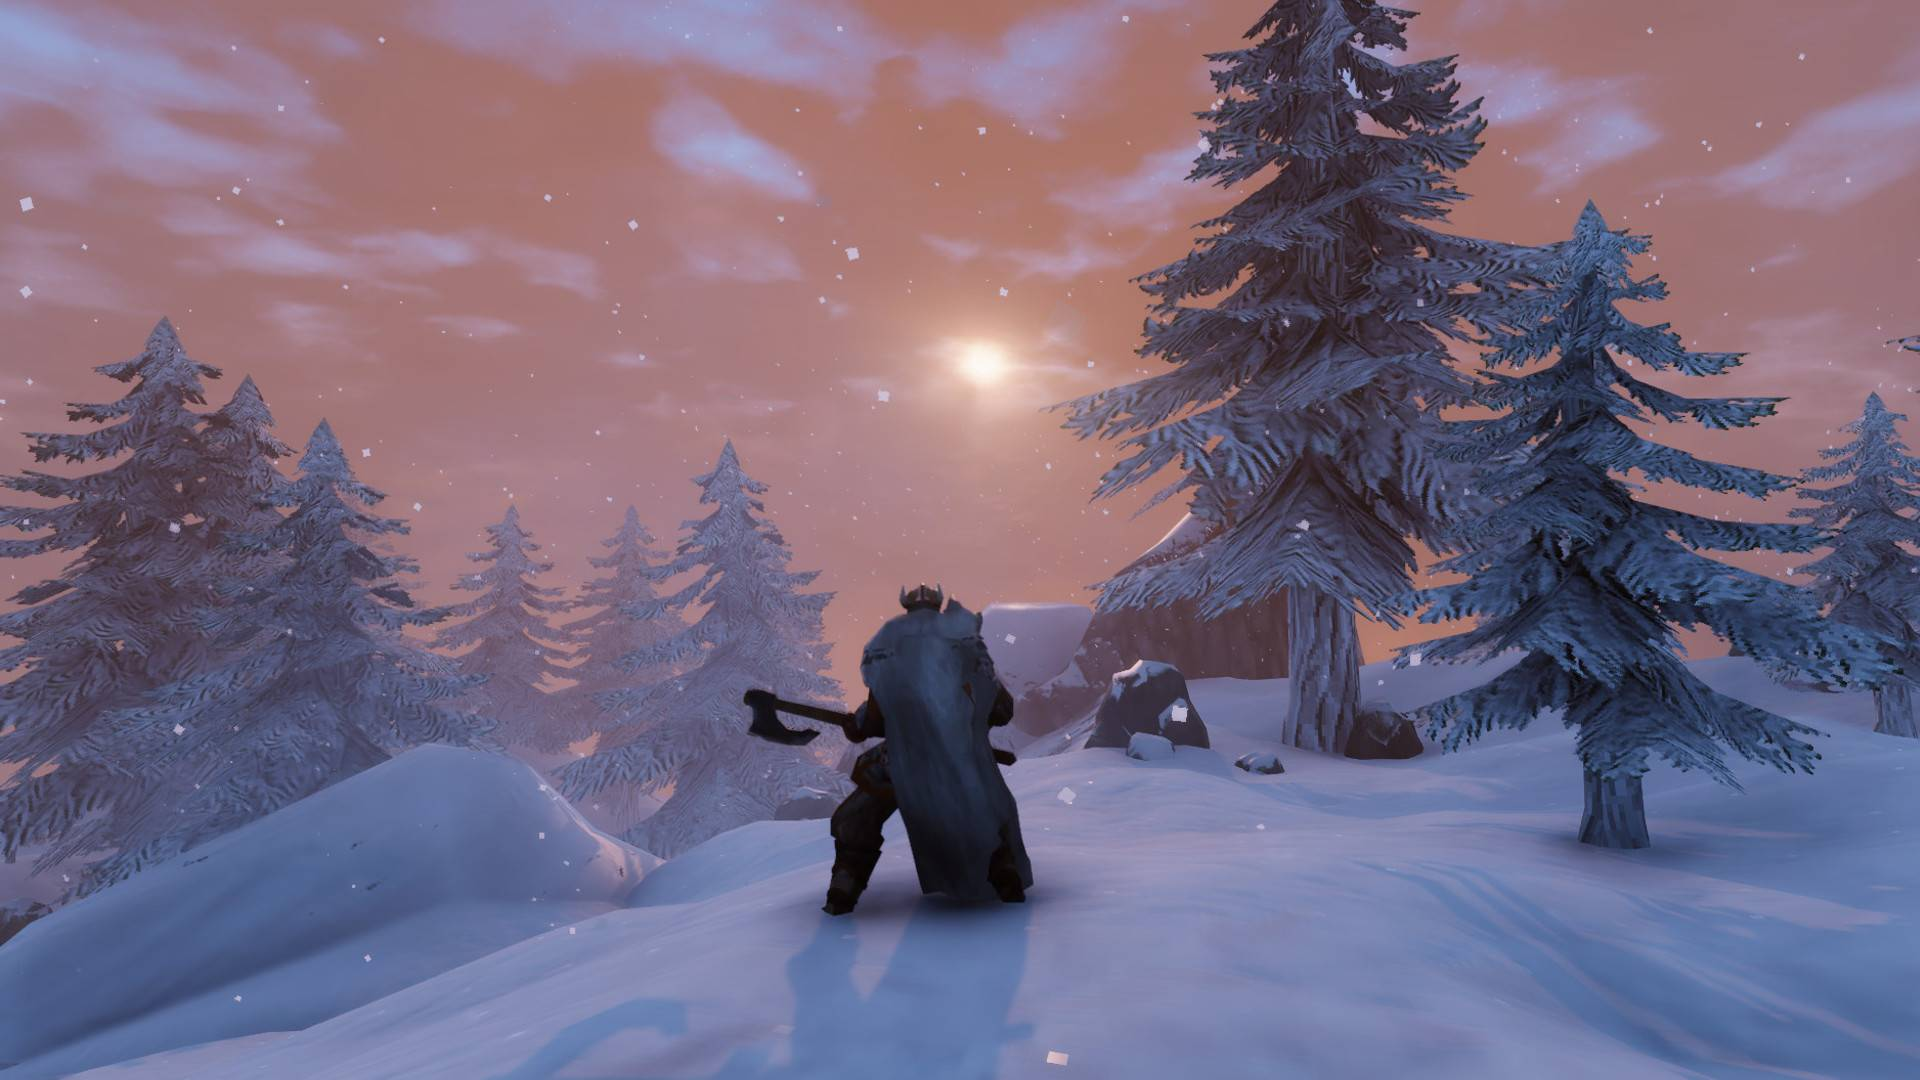 Playing Valheim using Vulkan could improve your frame rate and fix crashes - PCGamesN